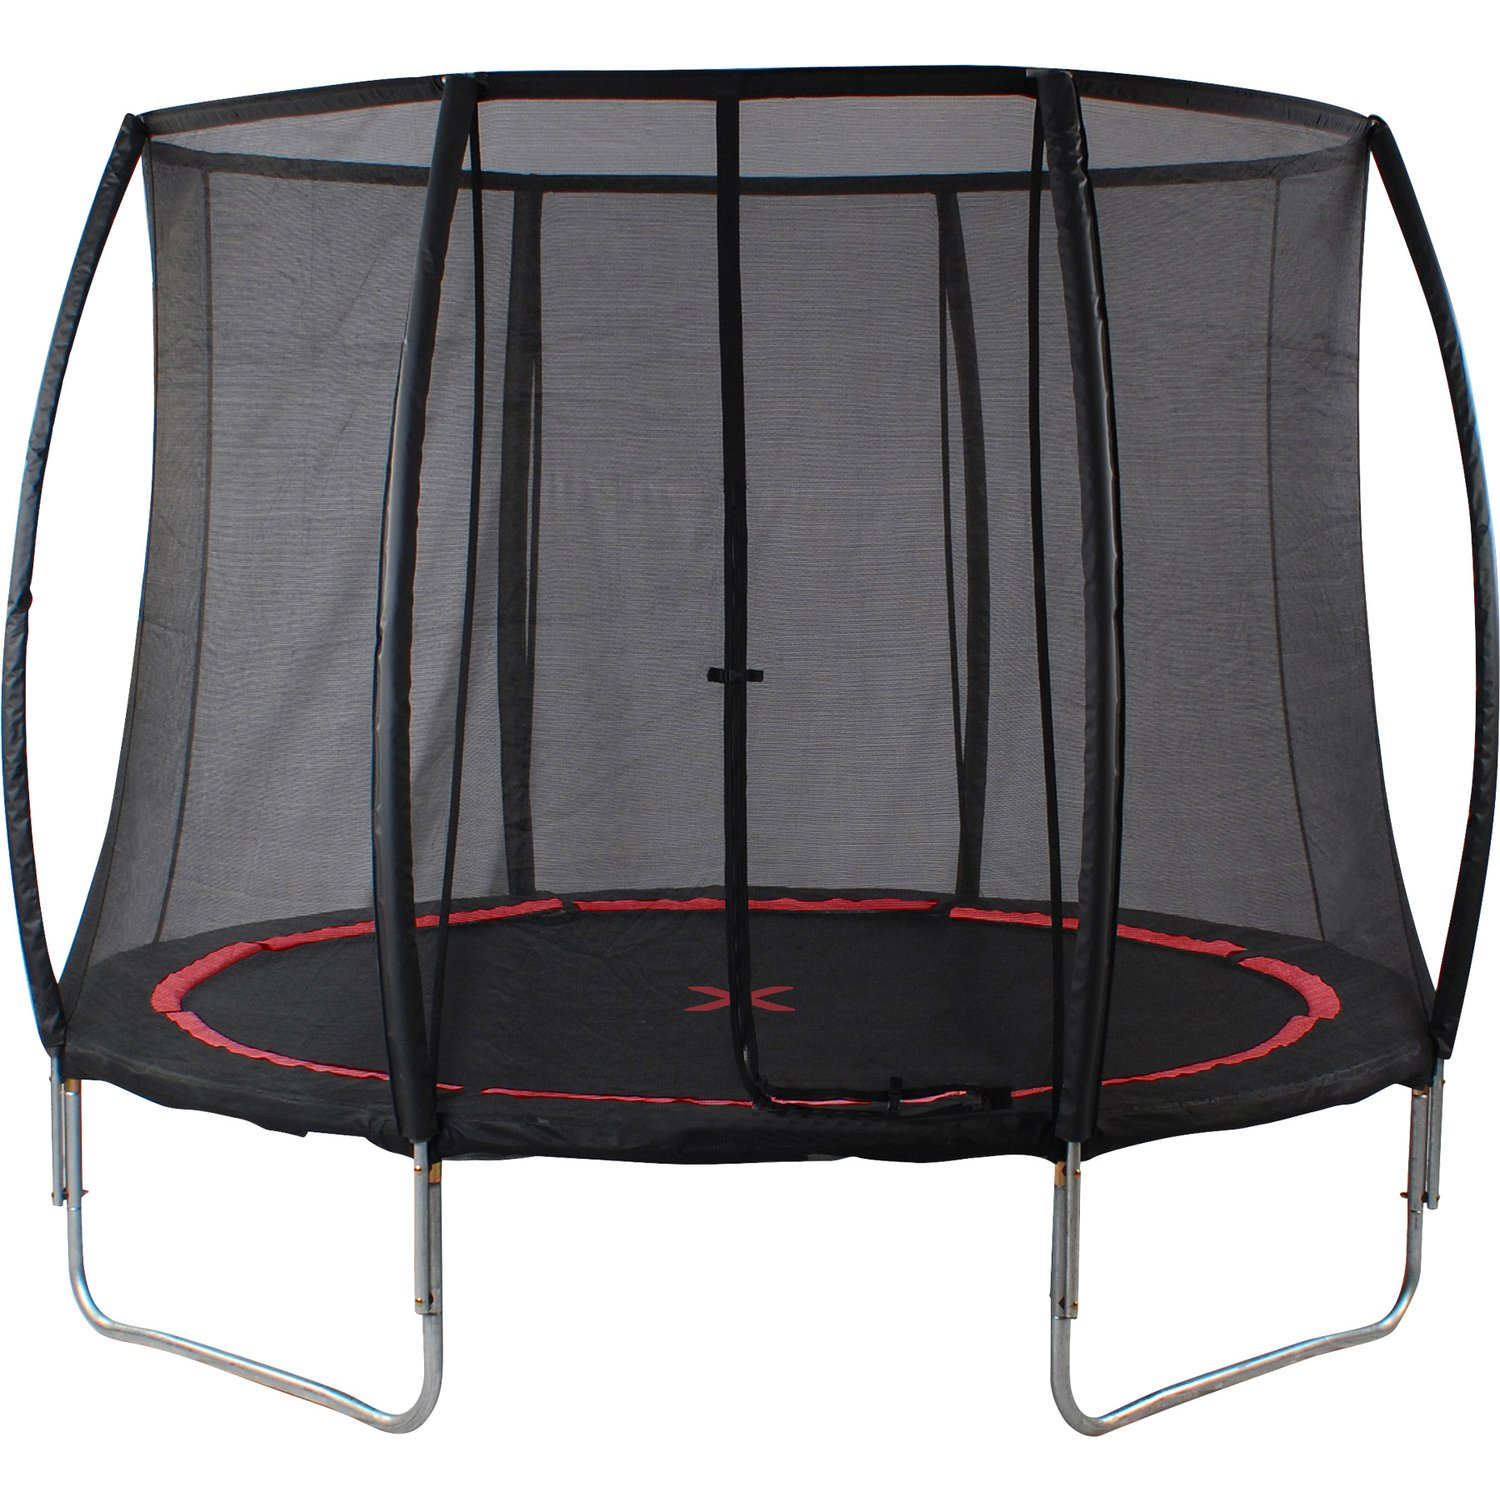 Cama elástica con red de seguridad, Black Spider.: Amazon.es ...